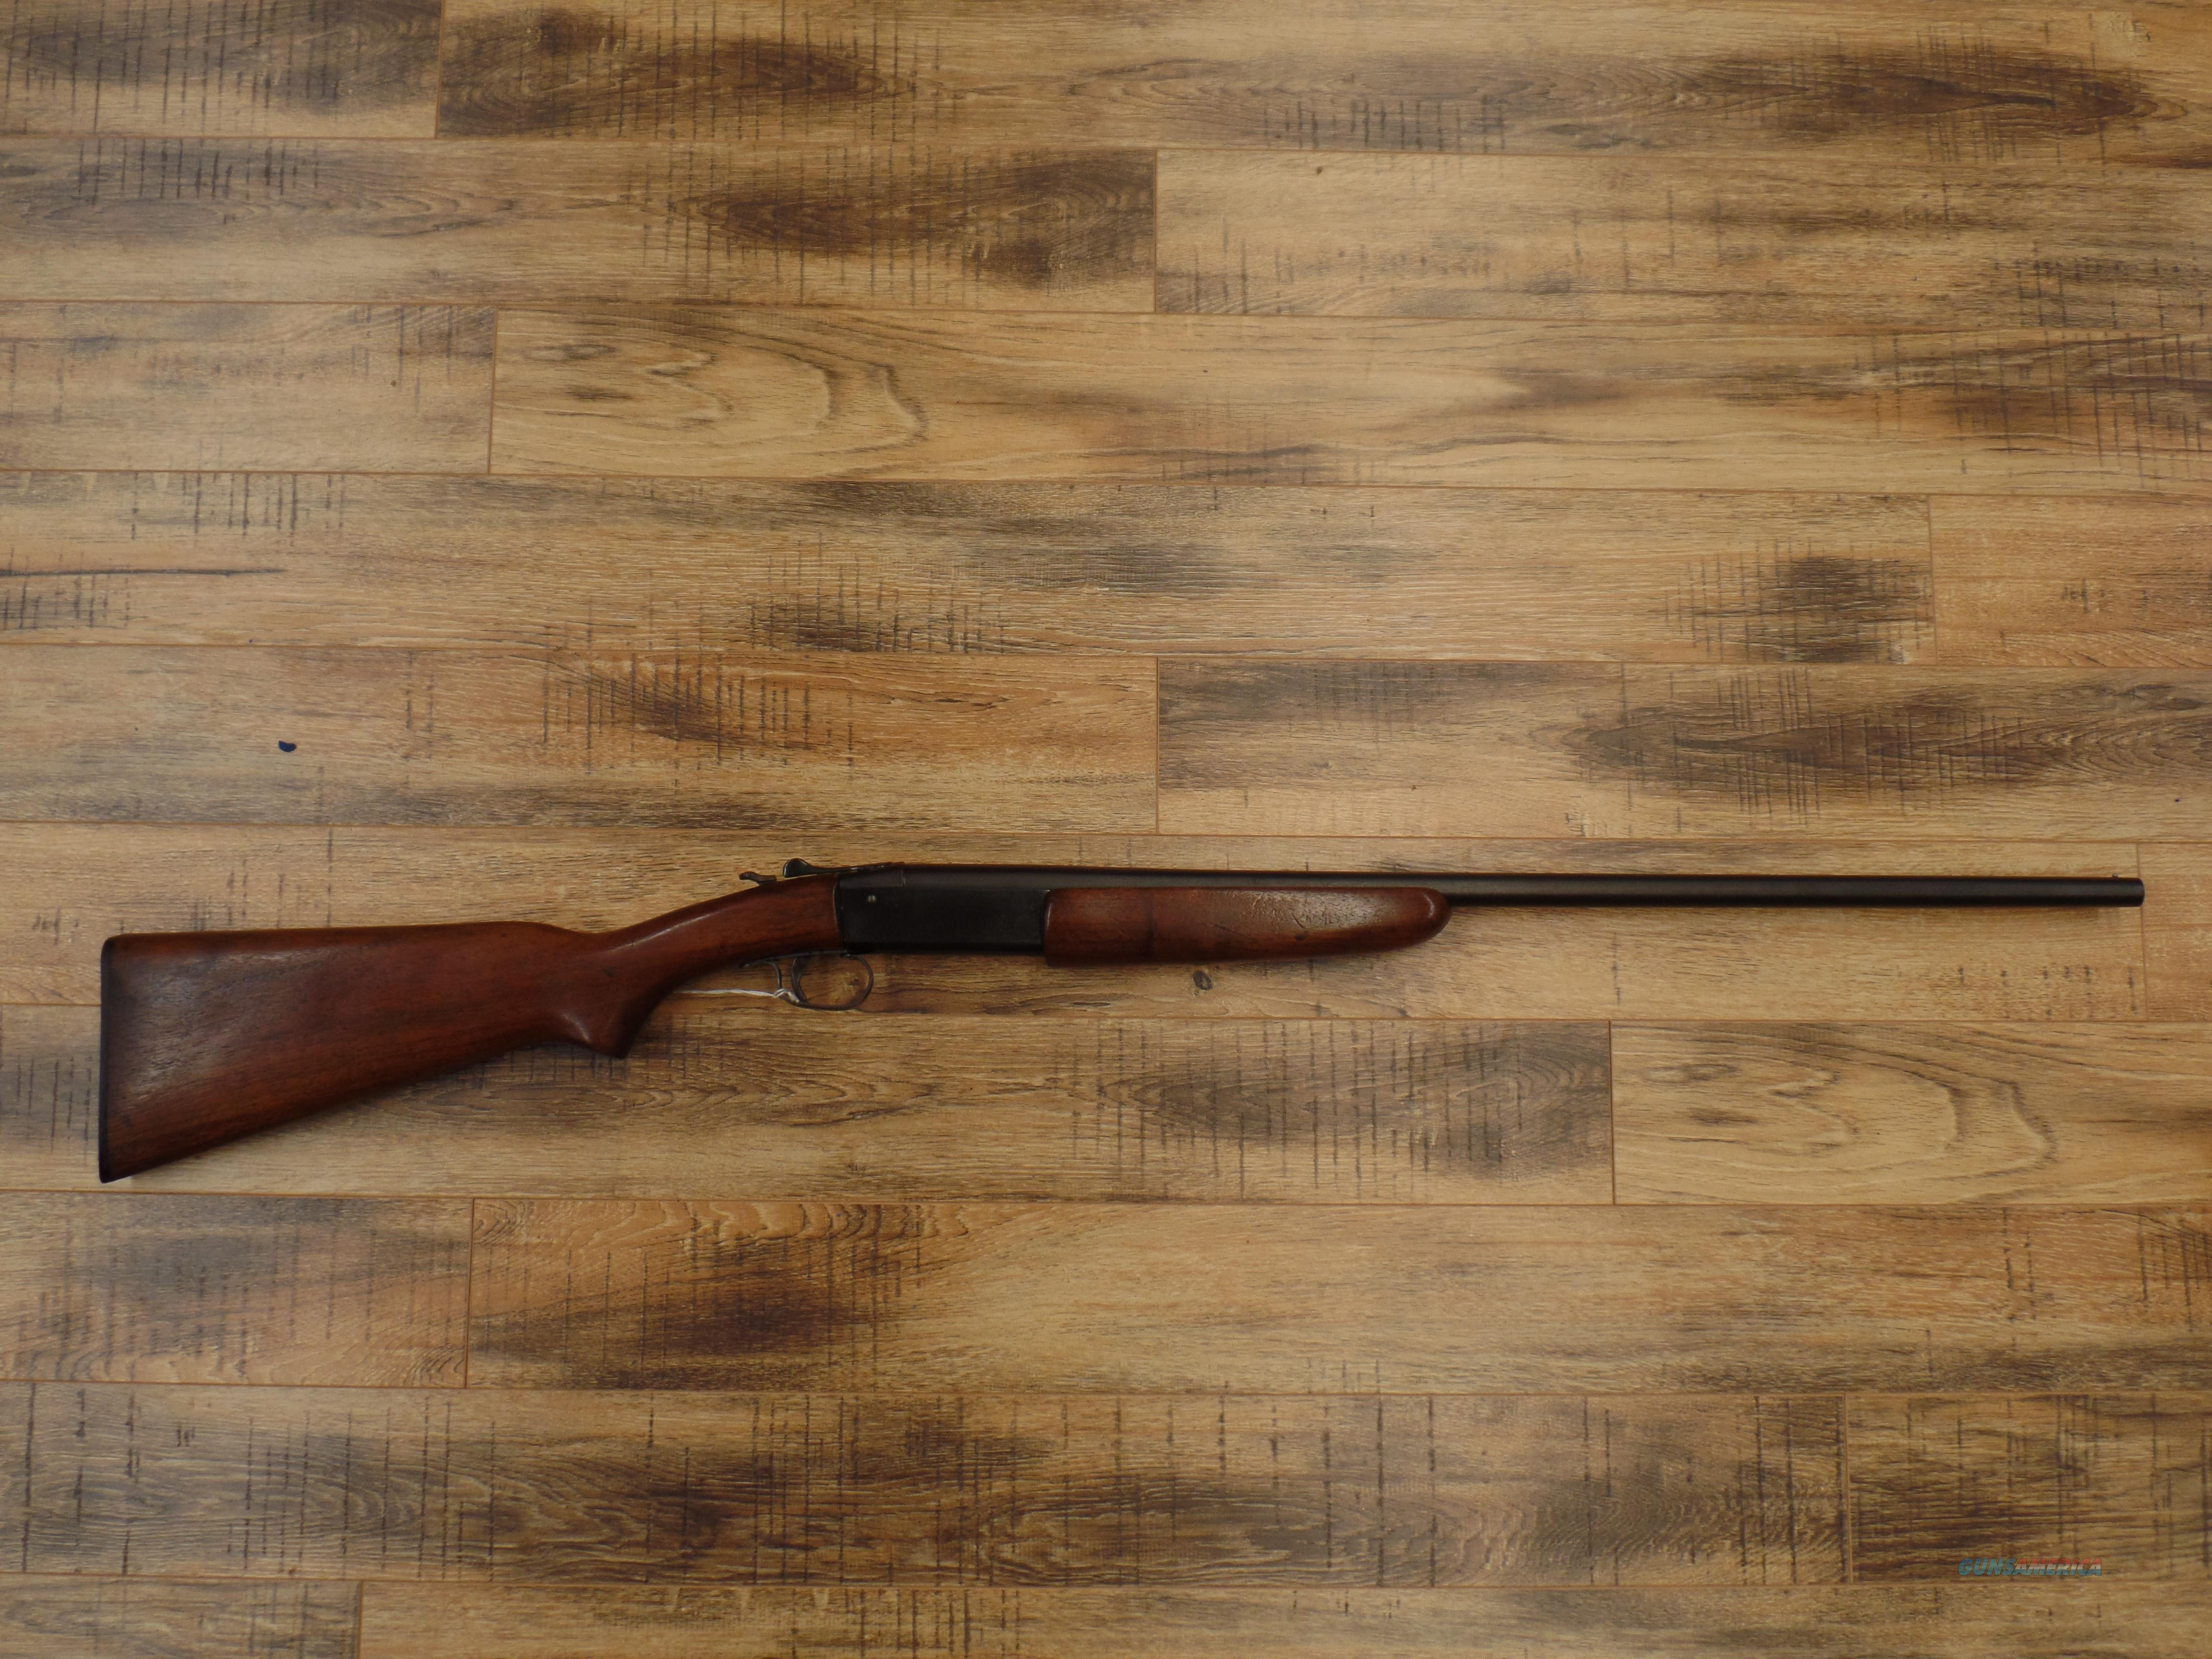 Winchester Model 37  Guns > Shotguns > Winchester Shotguns - Modern > Bolt/Single Shot